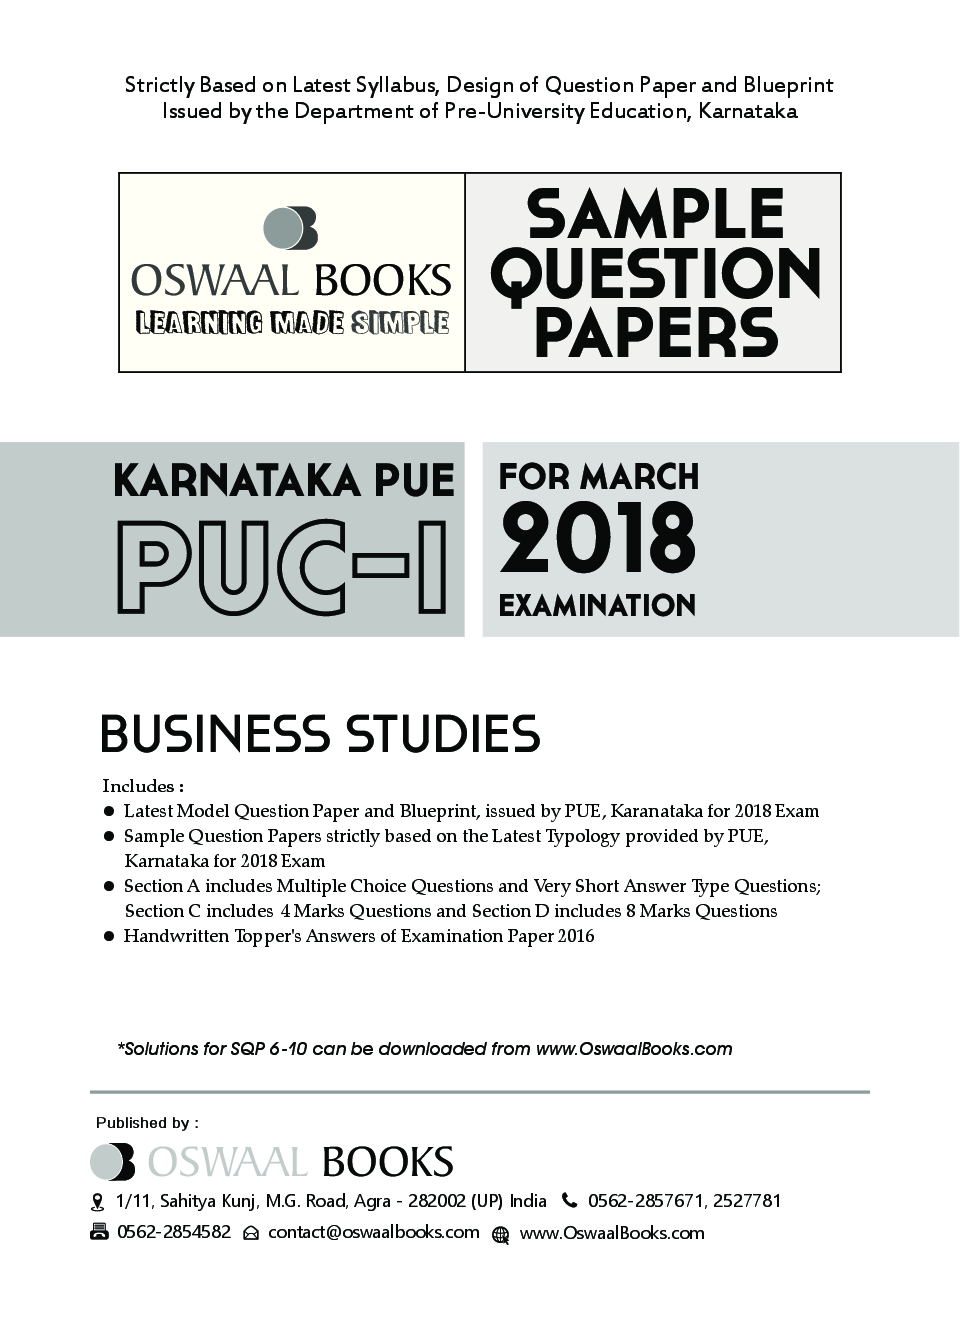 Download oswaal karnataka pue sample question papers for puc i oswaal karnataka pue sample question papers for puc i business studies march 2018 exam by panel of experts malvernweather Gallery